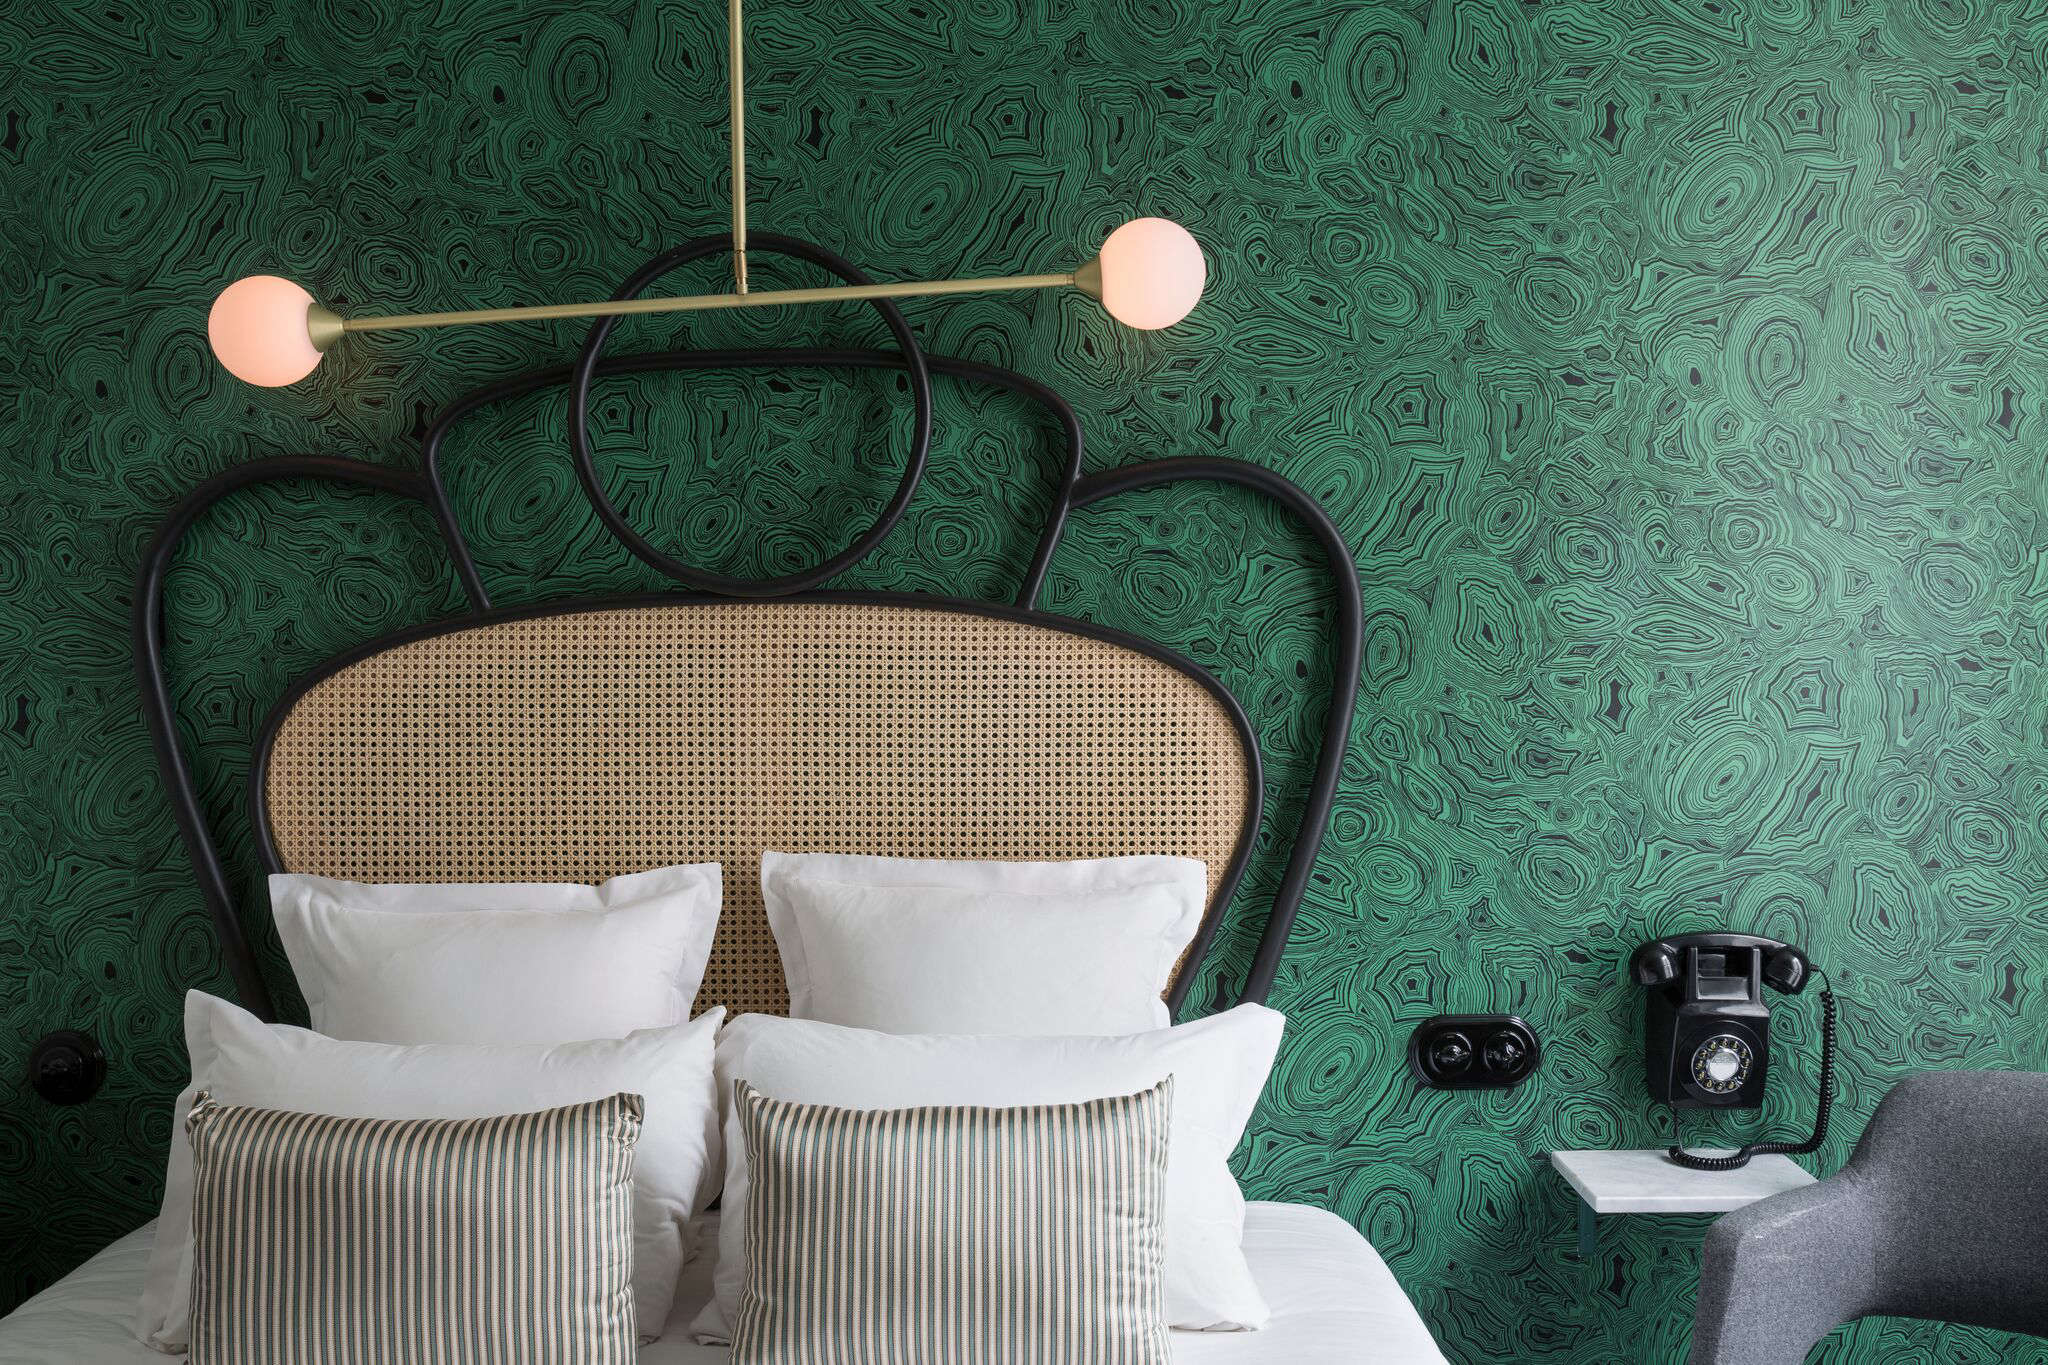 The Malachite wallpaper is a Fornasetti pattern from Cole & Son. The in-house wall phones are replicas of the Ericsson 3loading=